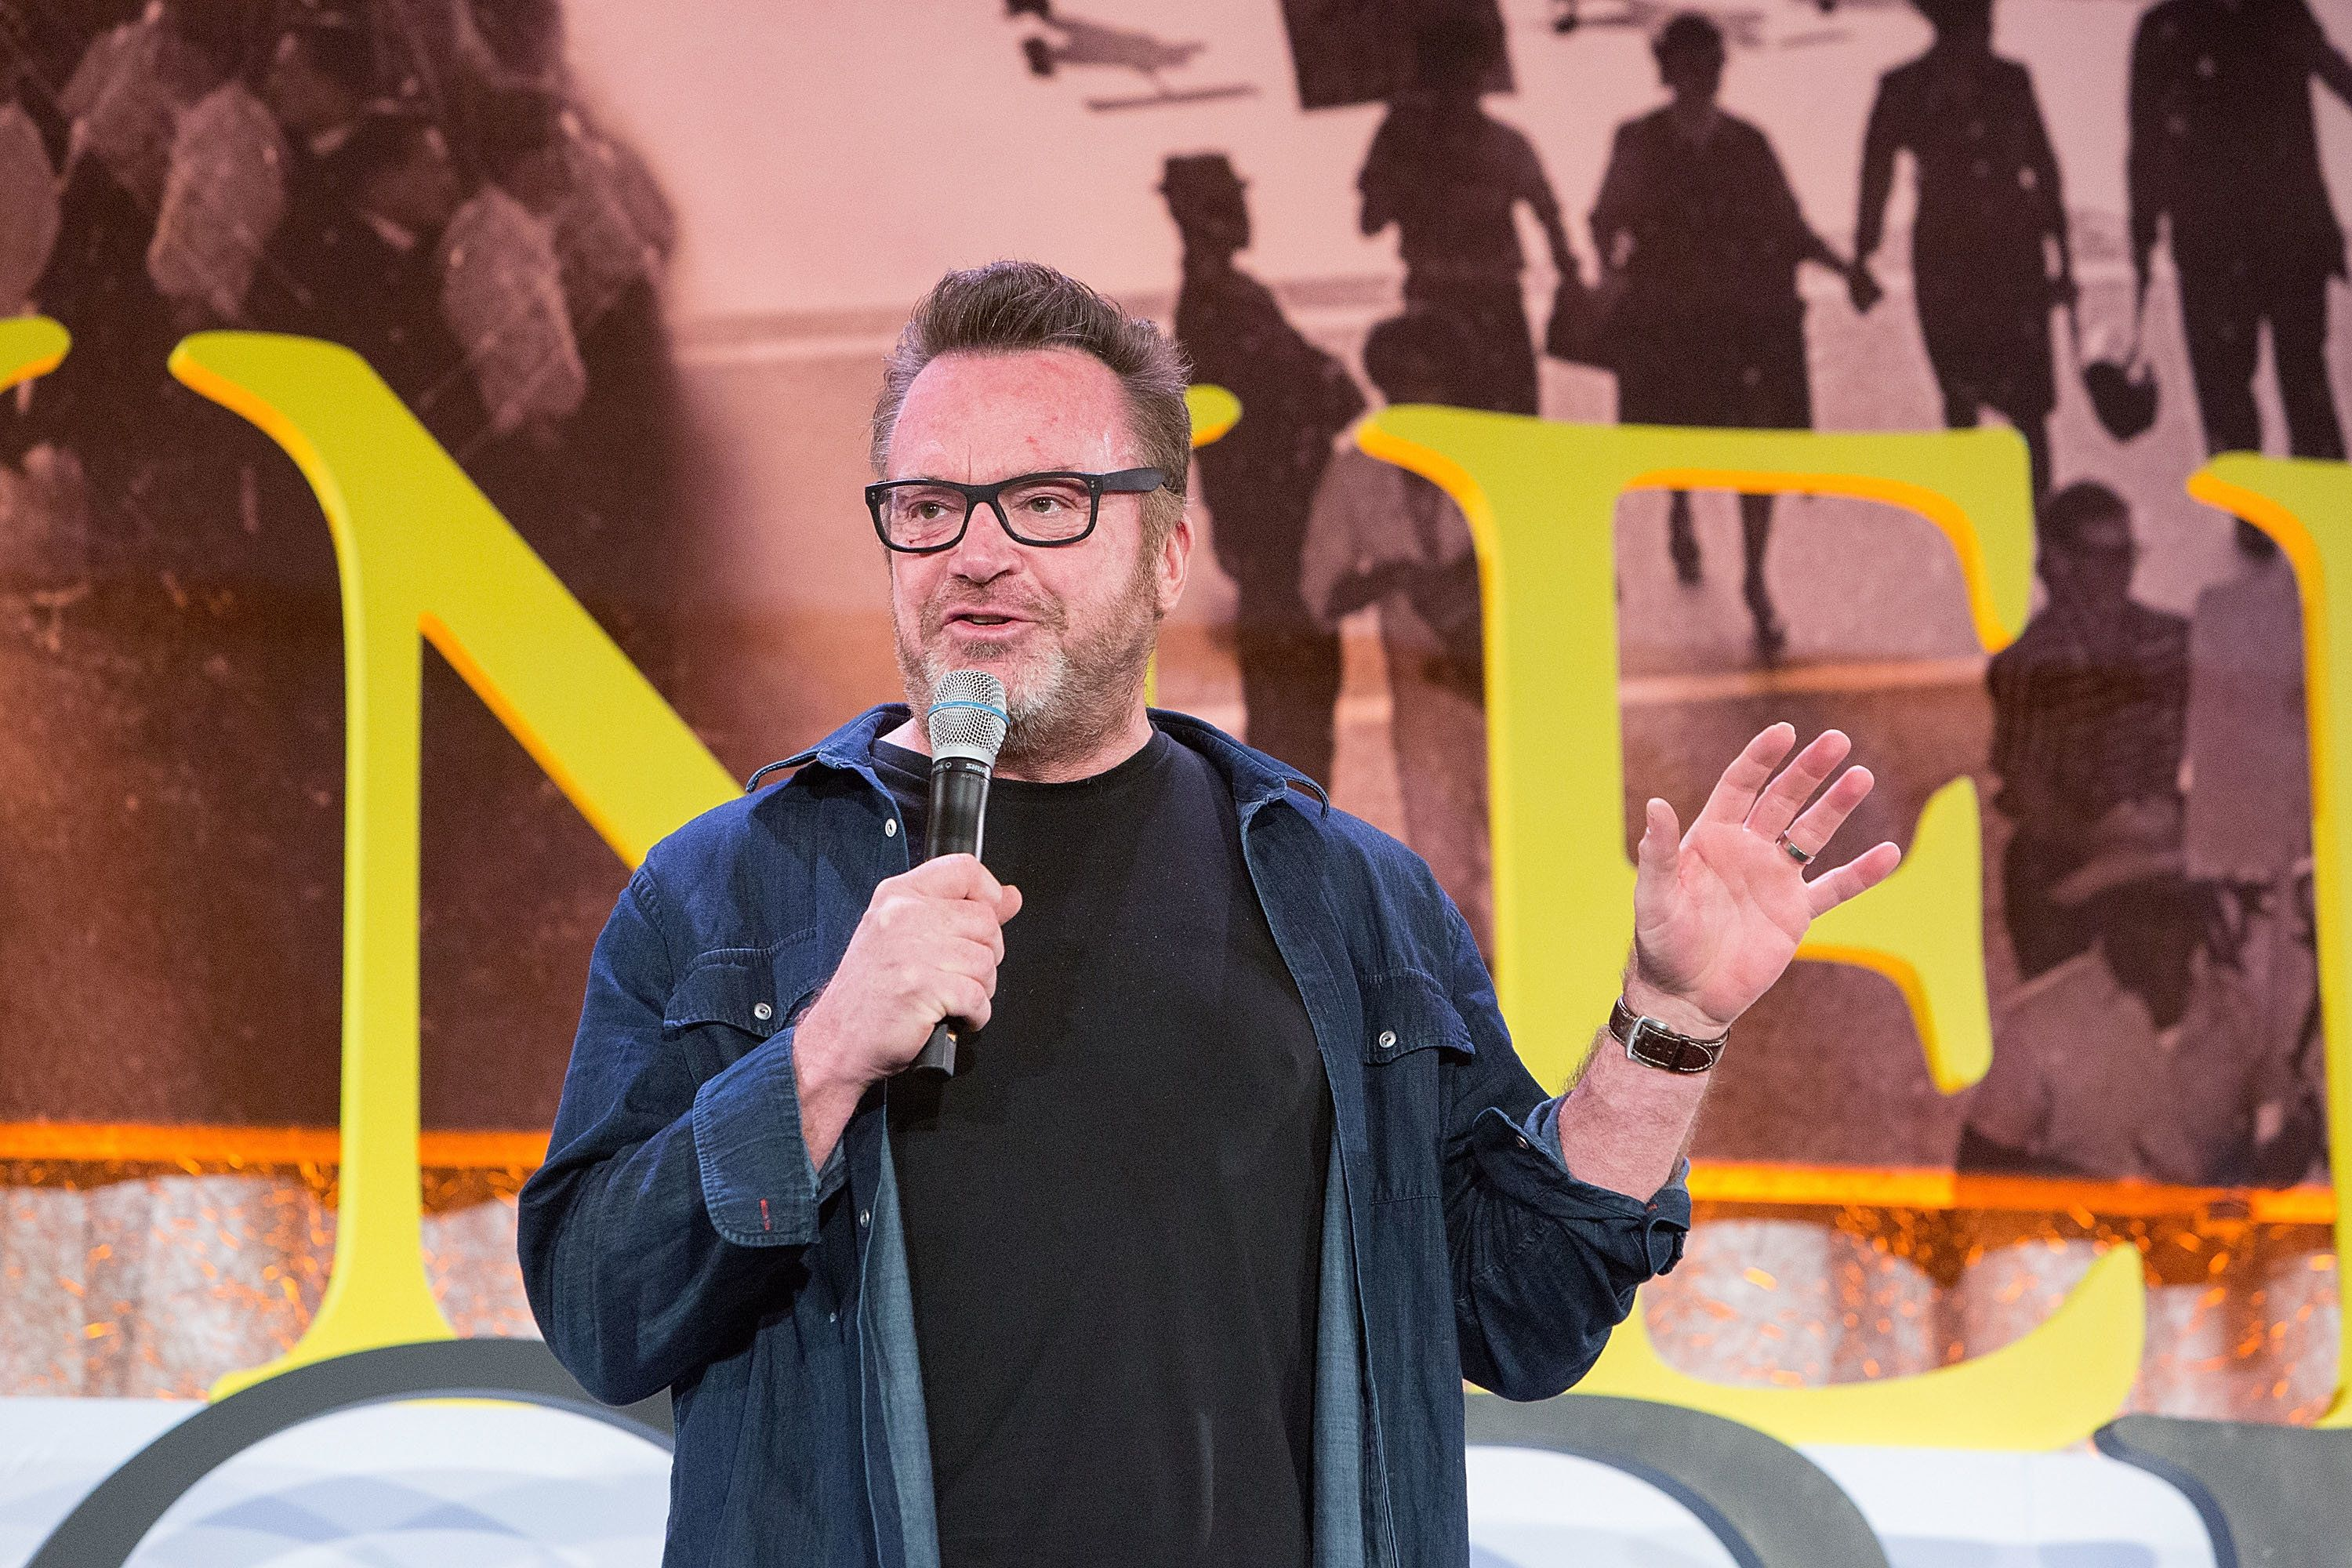 CHICAGO, IL - JANUARY 16:  Tom Arnold, Actor, Comedian, and Recovery Advocate, was among the advocates speaking at The Kennedy Forum National Summit On Mental Health Equity And Justice In Chicago at the Chicago Hilton and Tower Hotel on January 16, 2018 in Chicago, Illinois.  (Photo by Jeff Schear/Getty Images for Kennedy Forum)